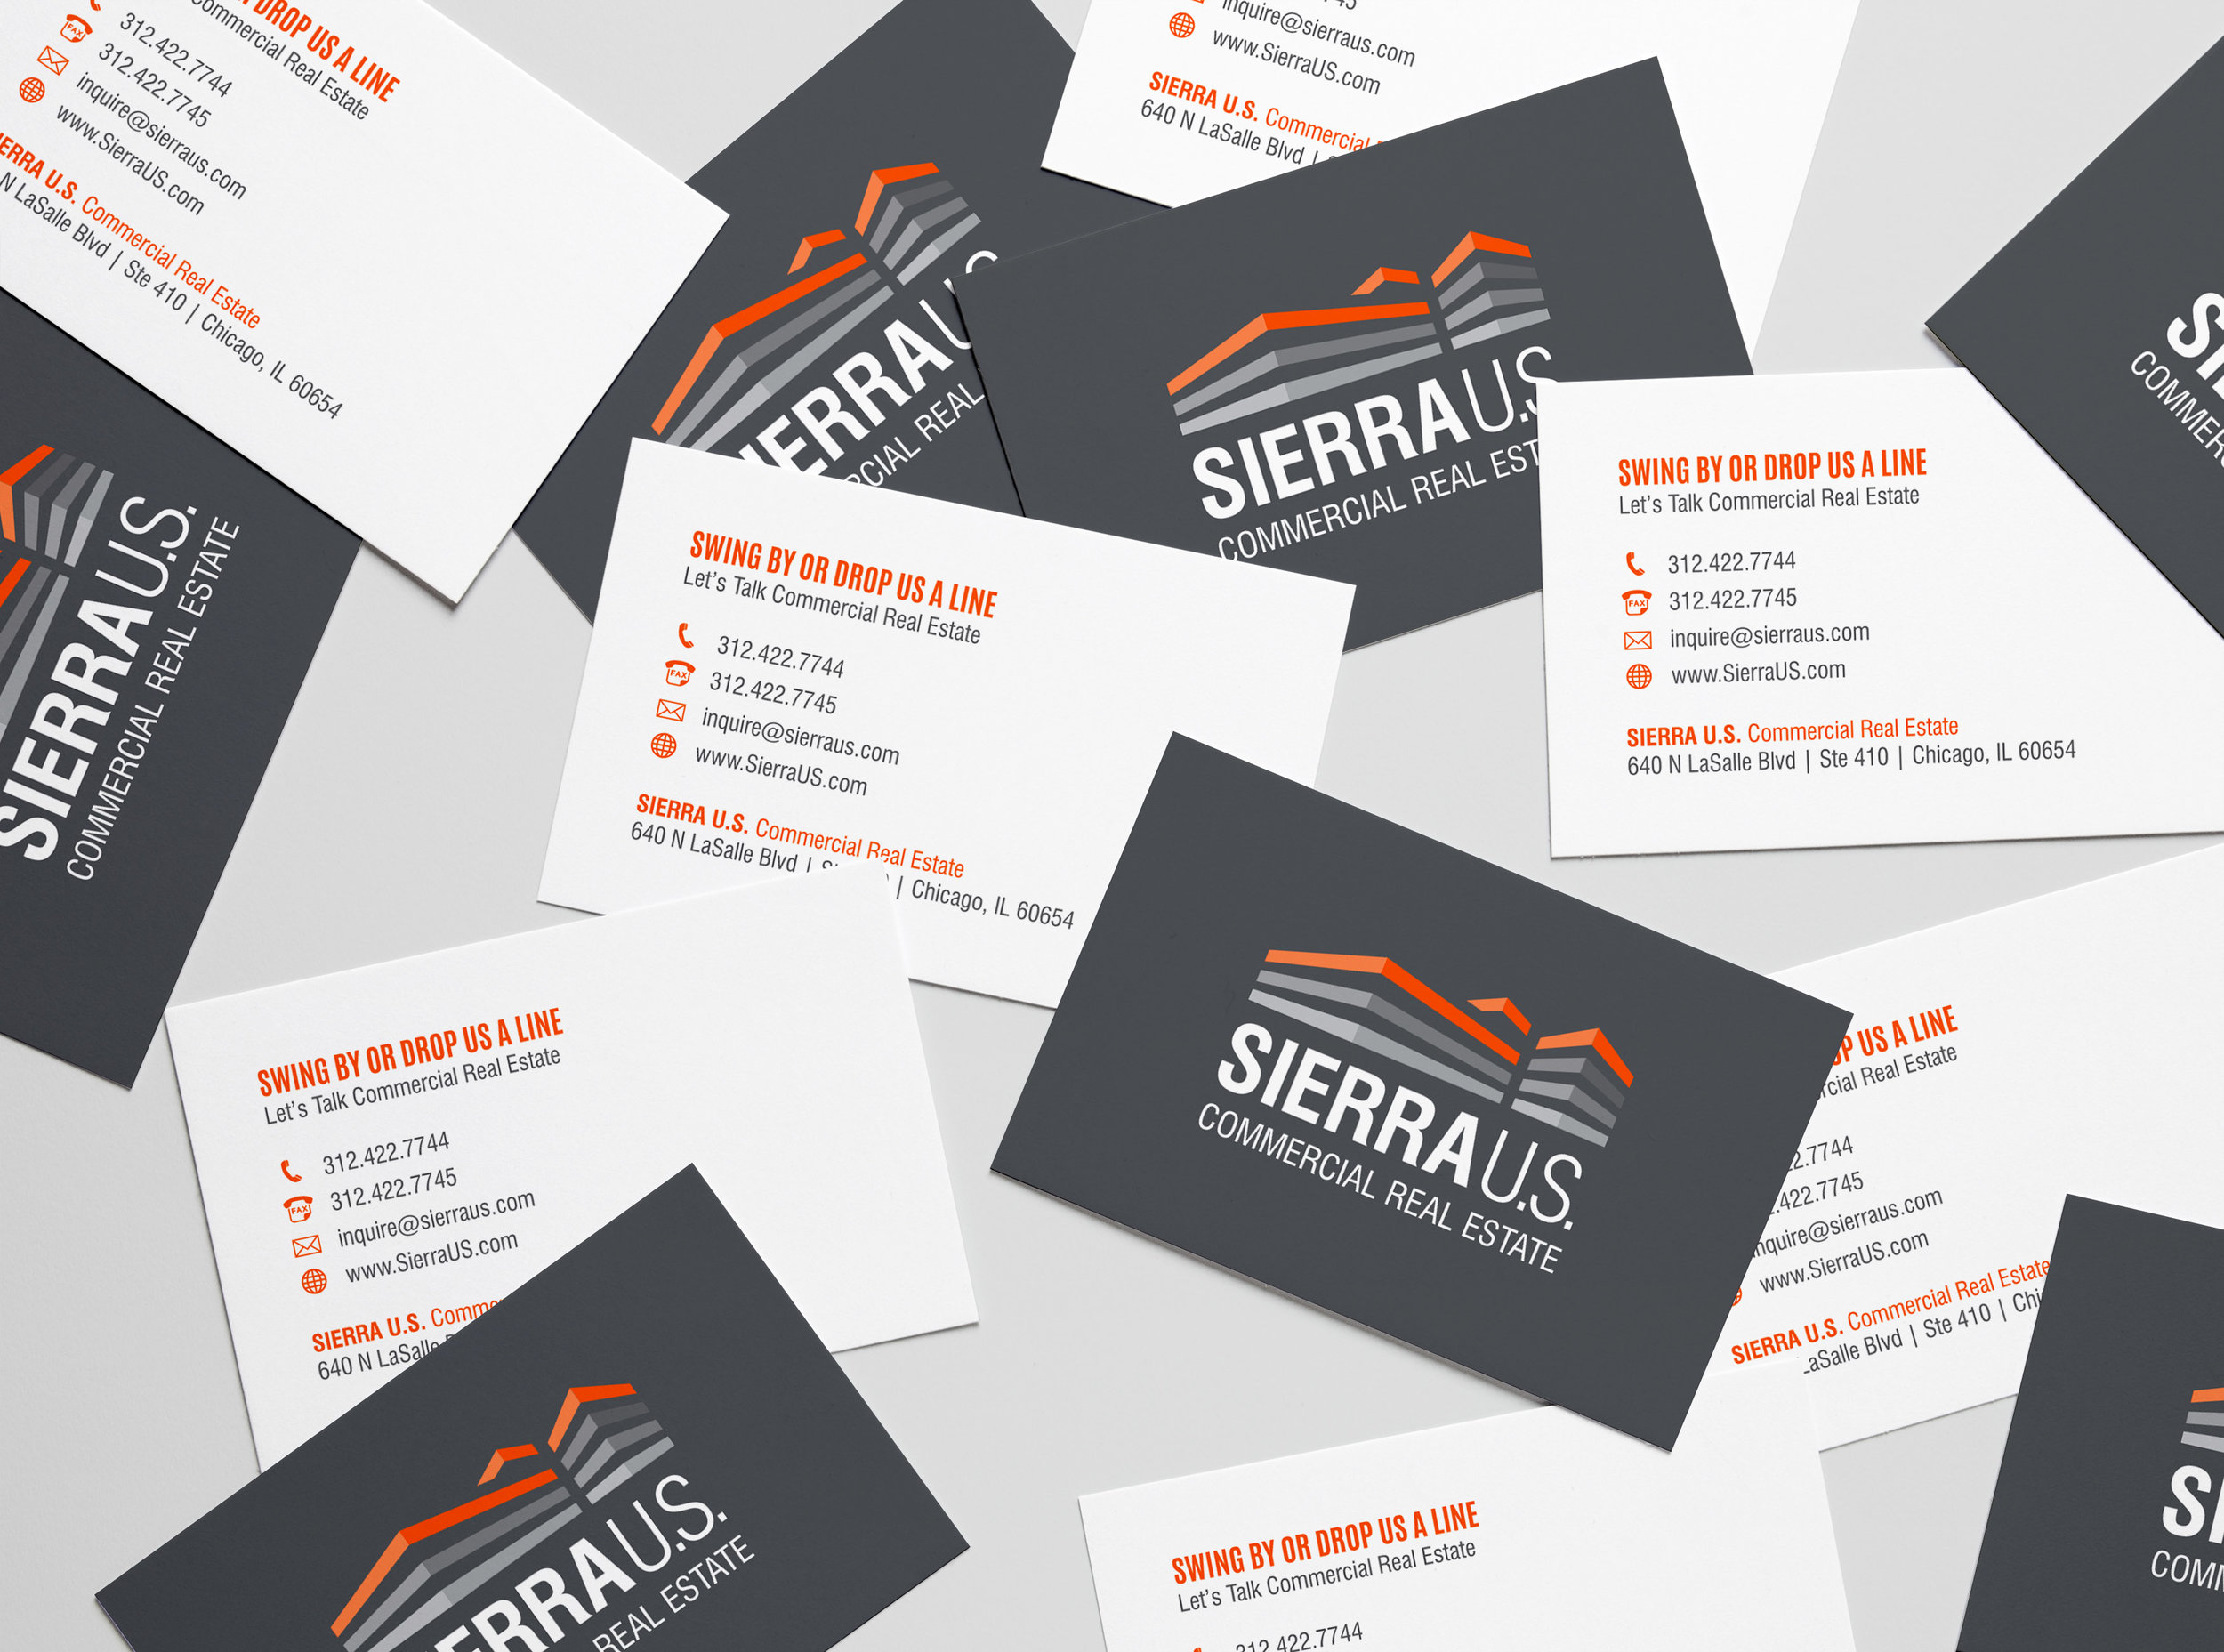 Realistic Business Cards MockUp 4__Sierra-BizCards-2.jpg